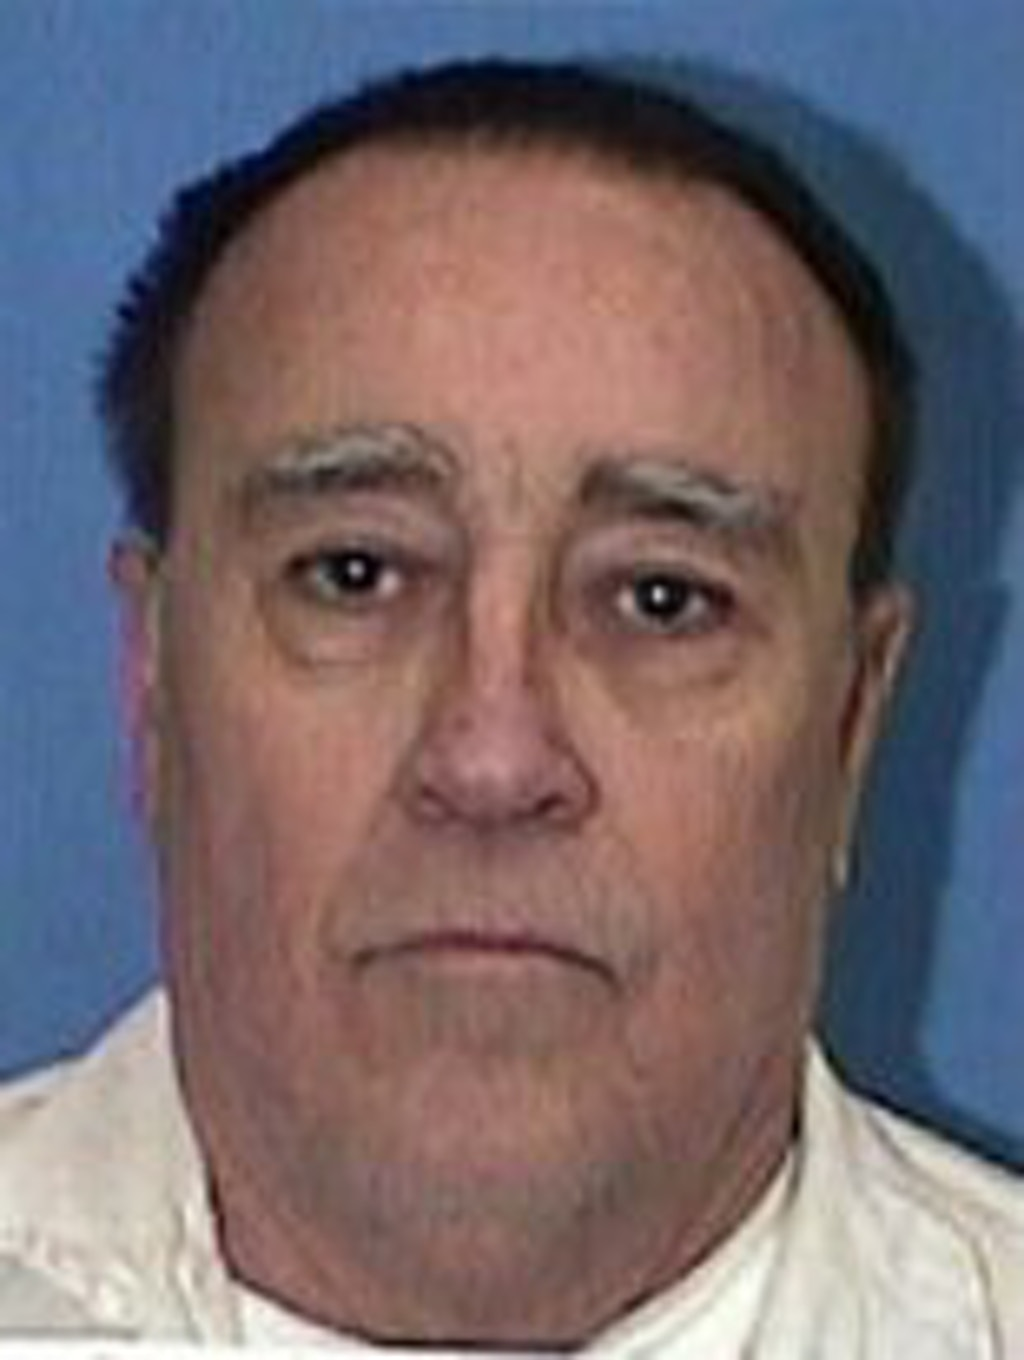 Another Texas Execution Thrown in Doubt by New DNA Tests